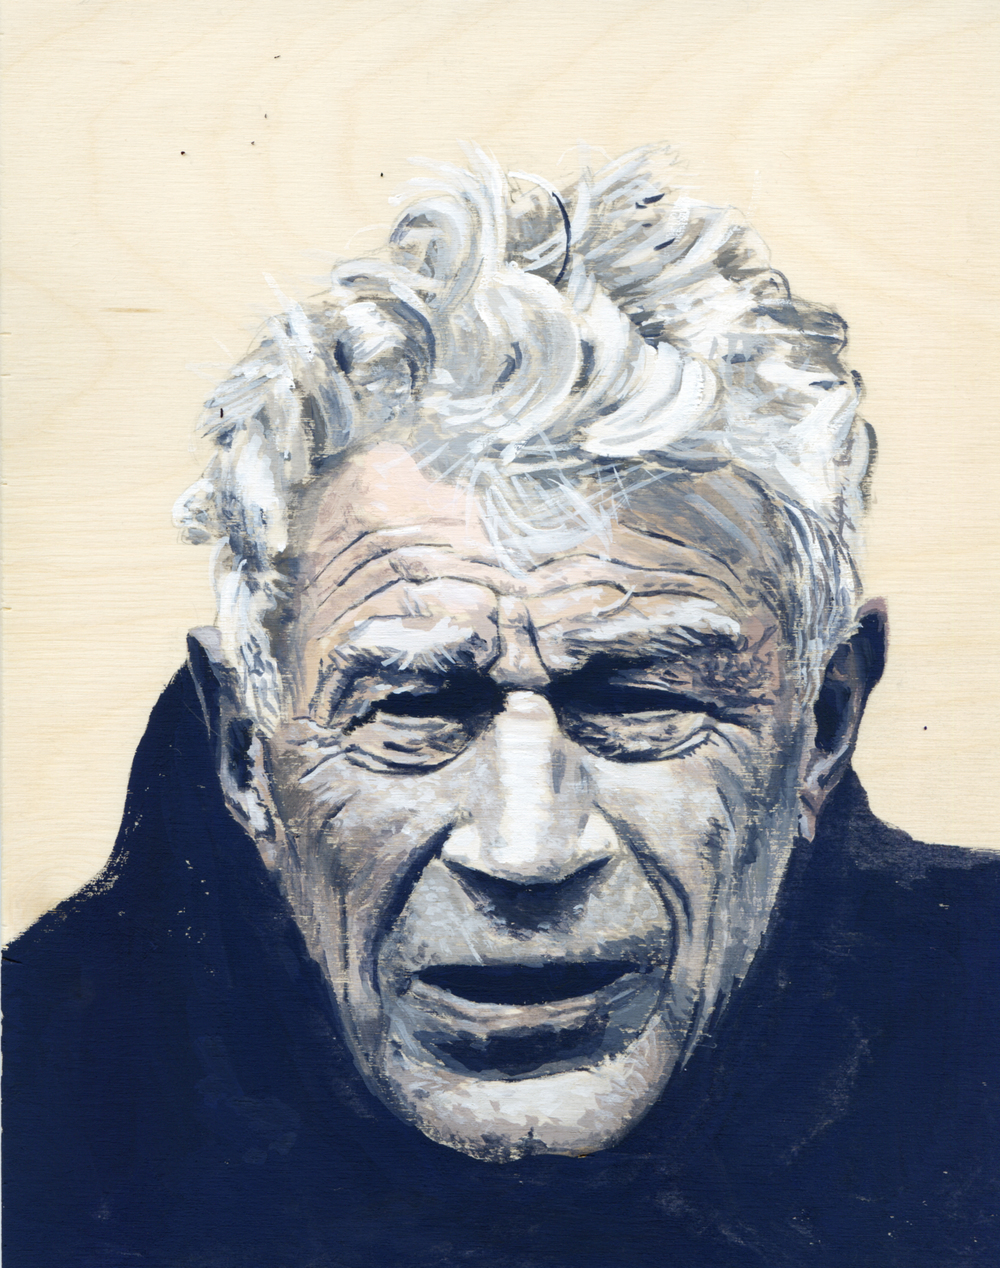 john berger John berger at his home near paris in 2009 on winning the booker prize for his novel g in 1972, he attacked the sponsors' exploitation of their caribbean workforce, and said he would give half .